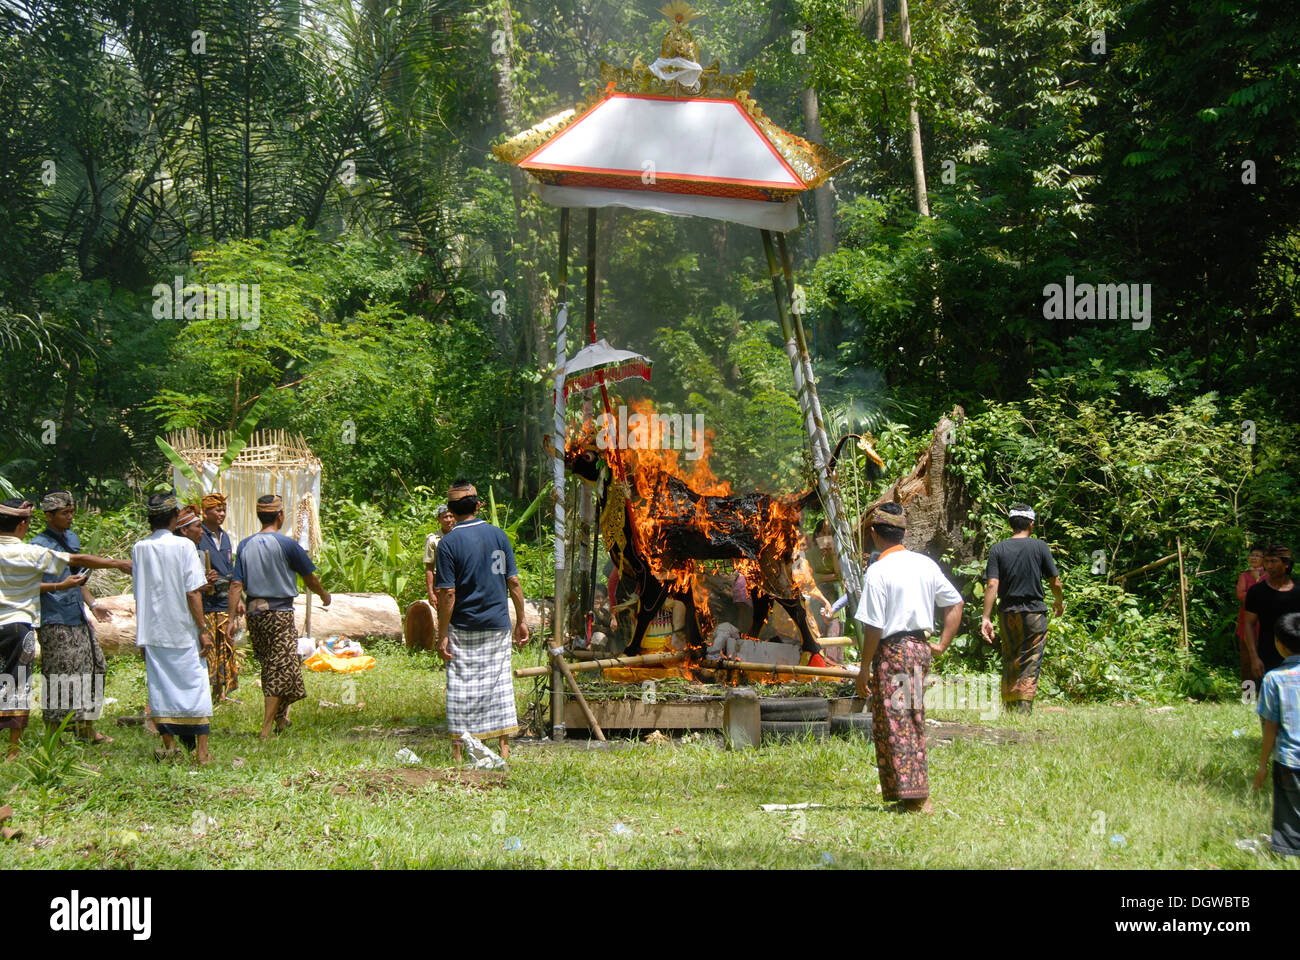 Bali Hinduism, Funeral ceremony, cremation of body in a cow-shaped shrine, Bongkasa near Ubud, Bali, Indonesia, Southeast Asia - Stock Image